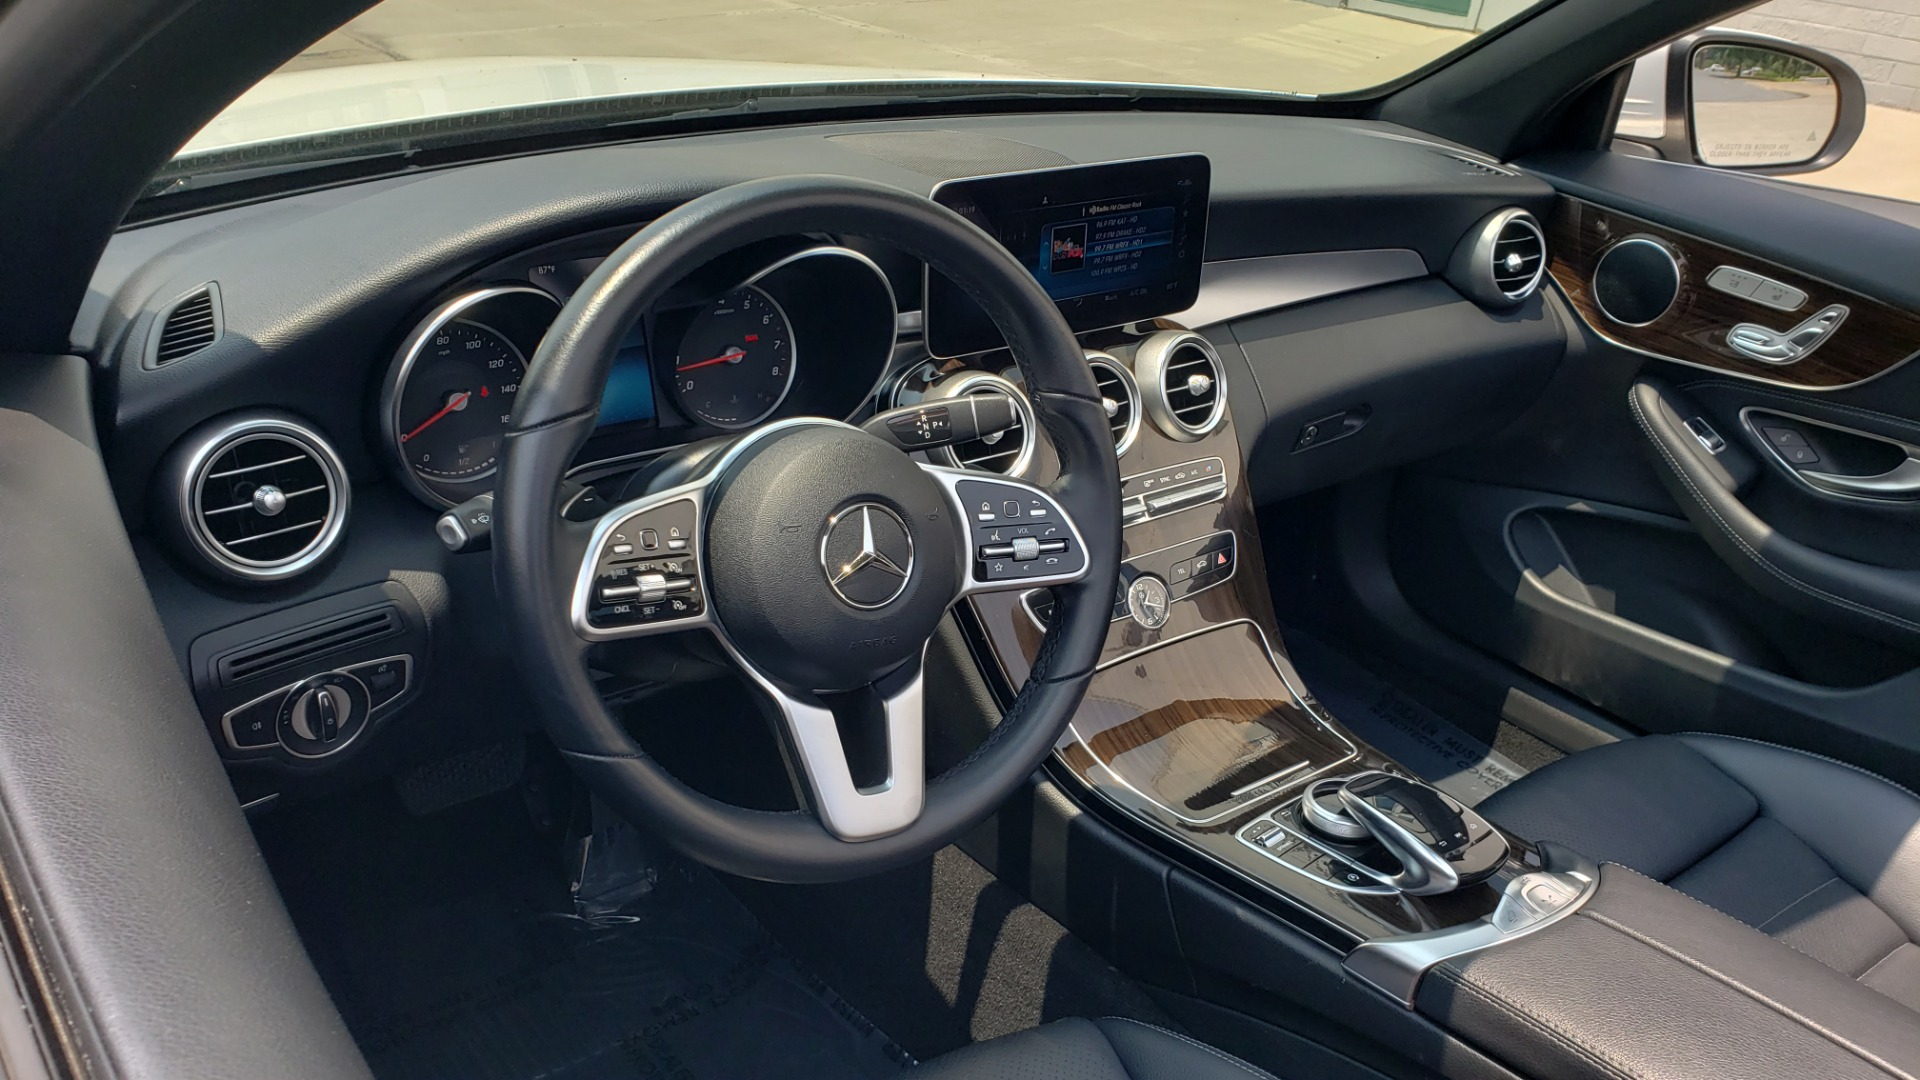 Used 2019 Mercedes-Benz C-CLASS C 300 CABRIOLET 2.0L / AUTO / NAV / HD RADIO / REARVIEW for sale $46,995 at Formula Imports in Charlotte NC 28227 15